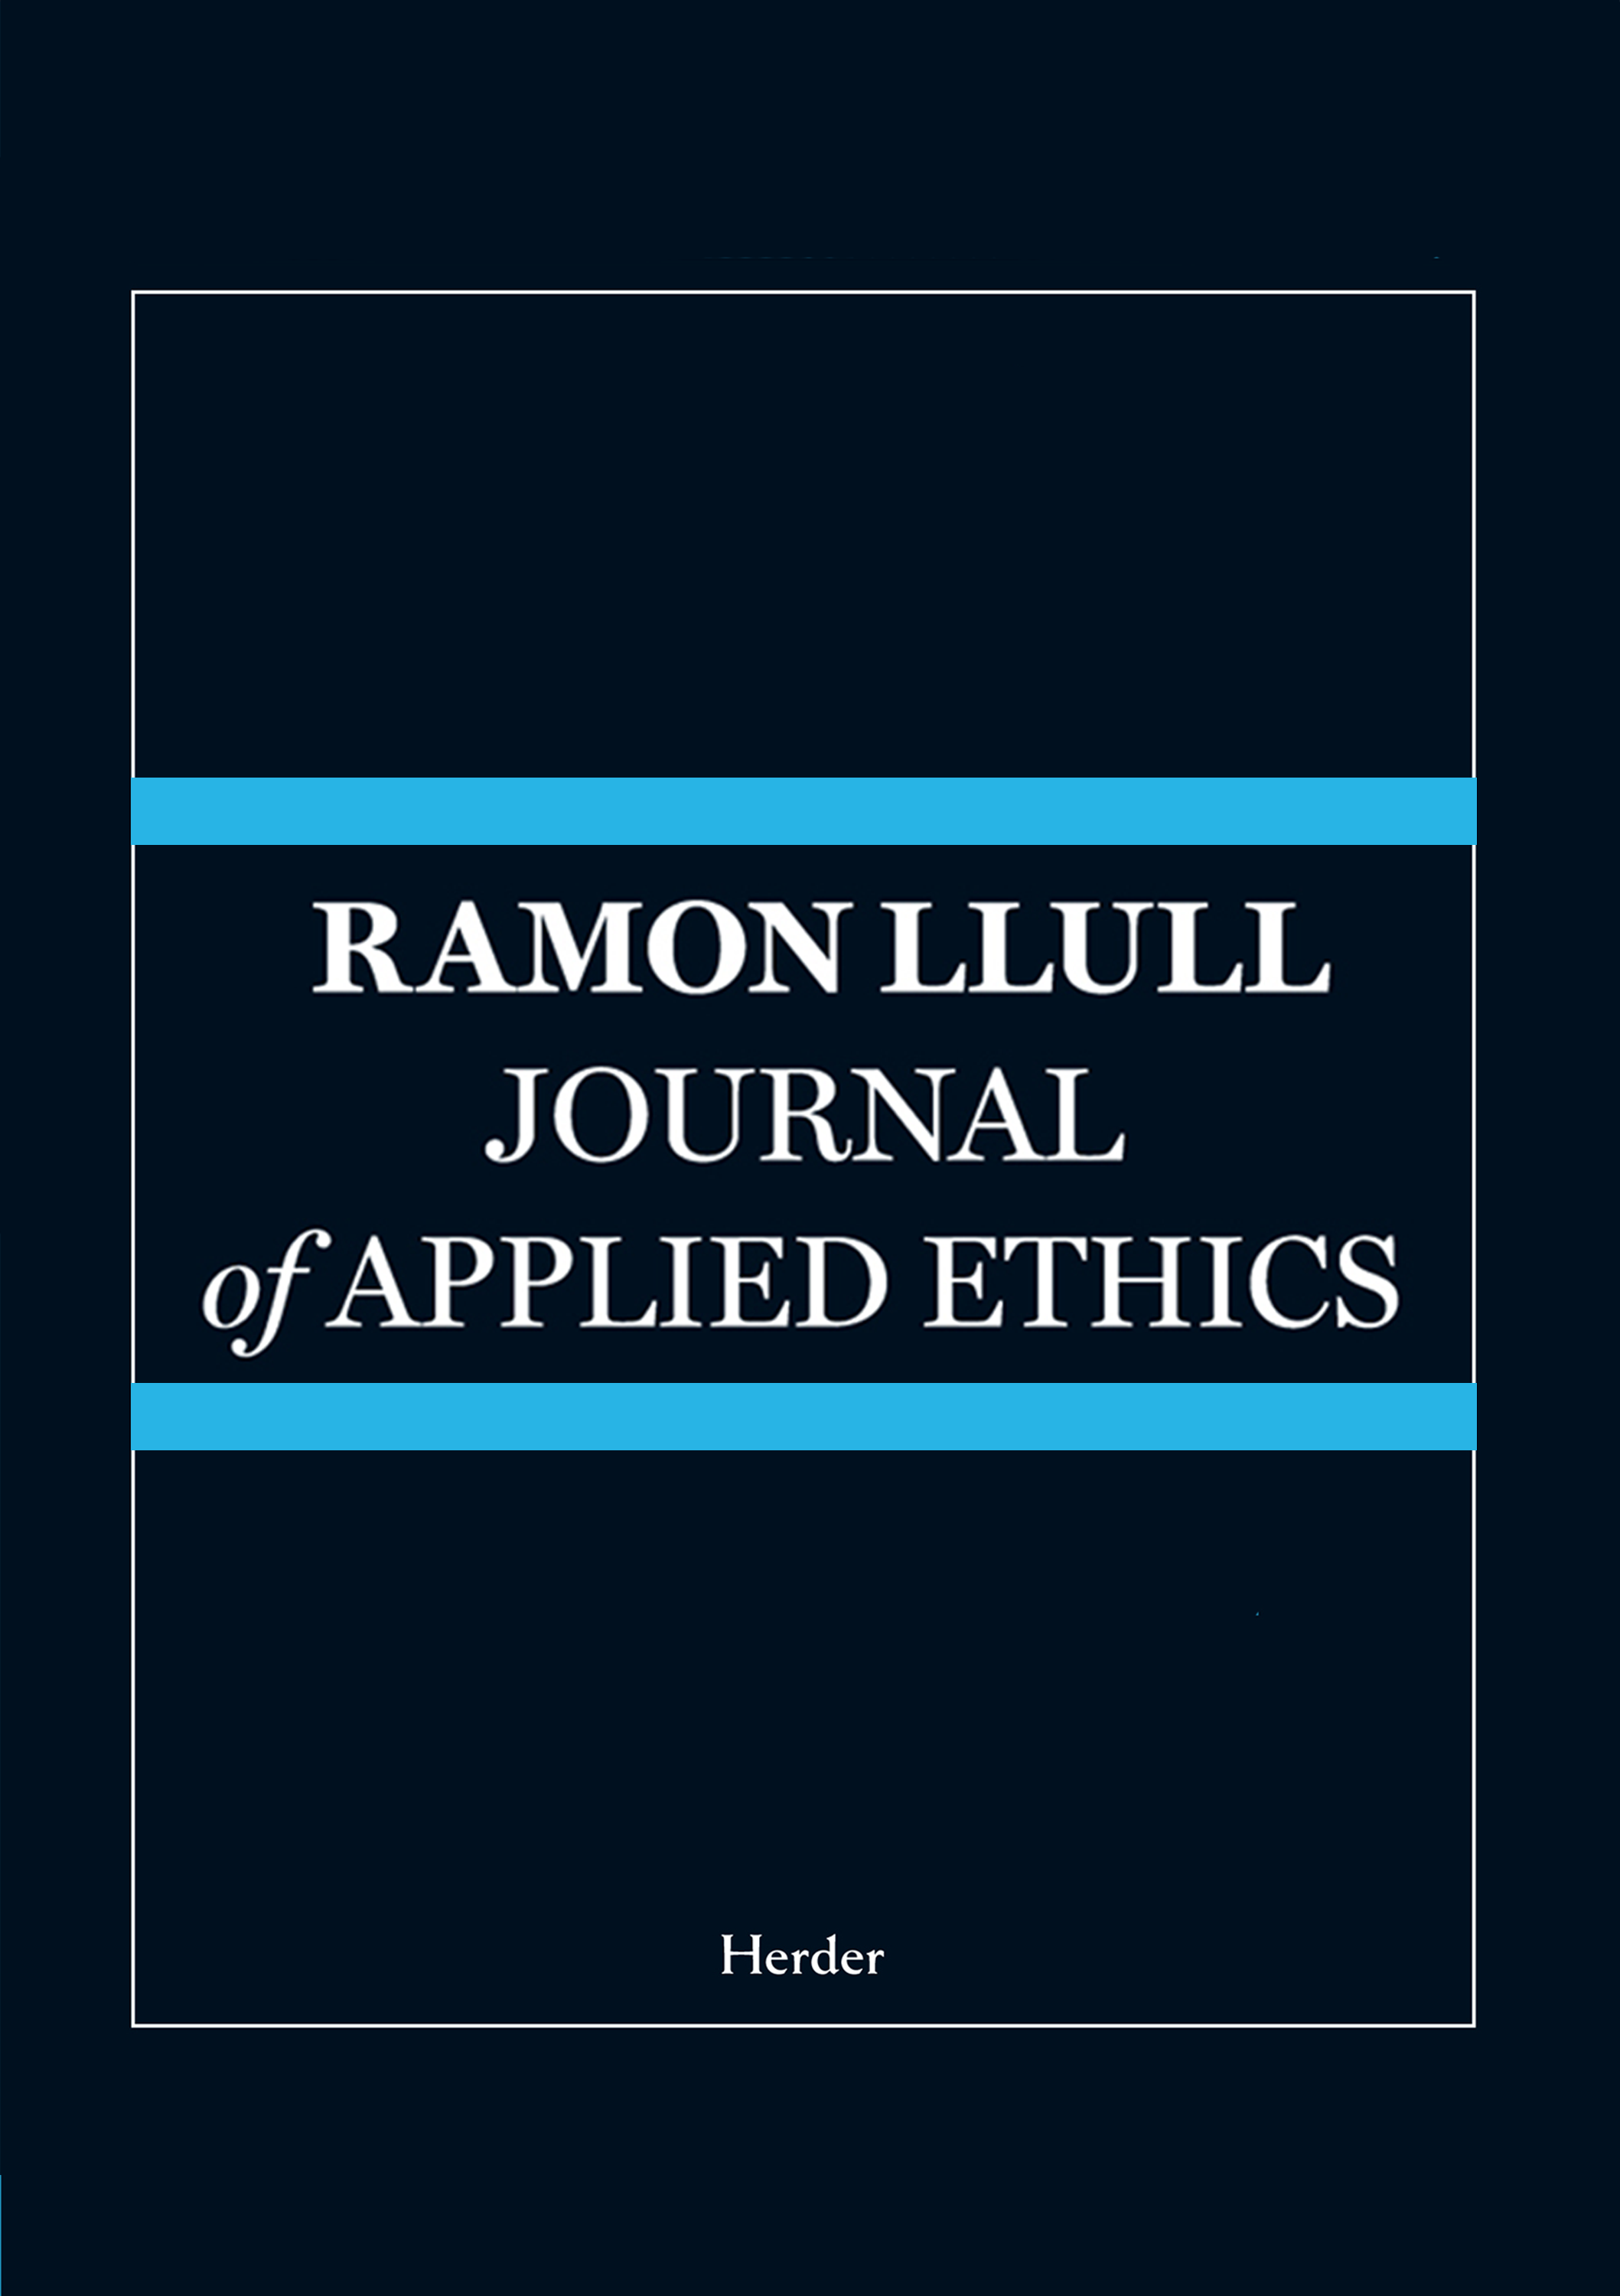 Journal of Applied Ethics